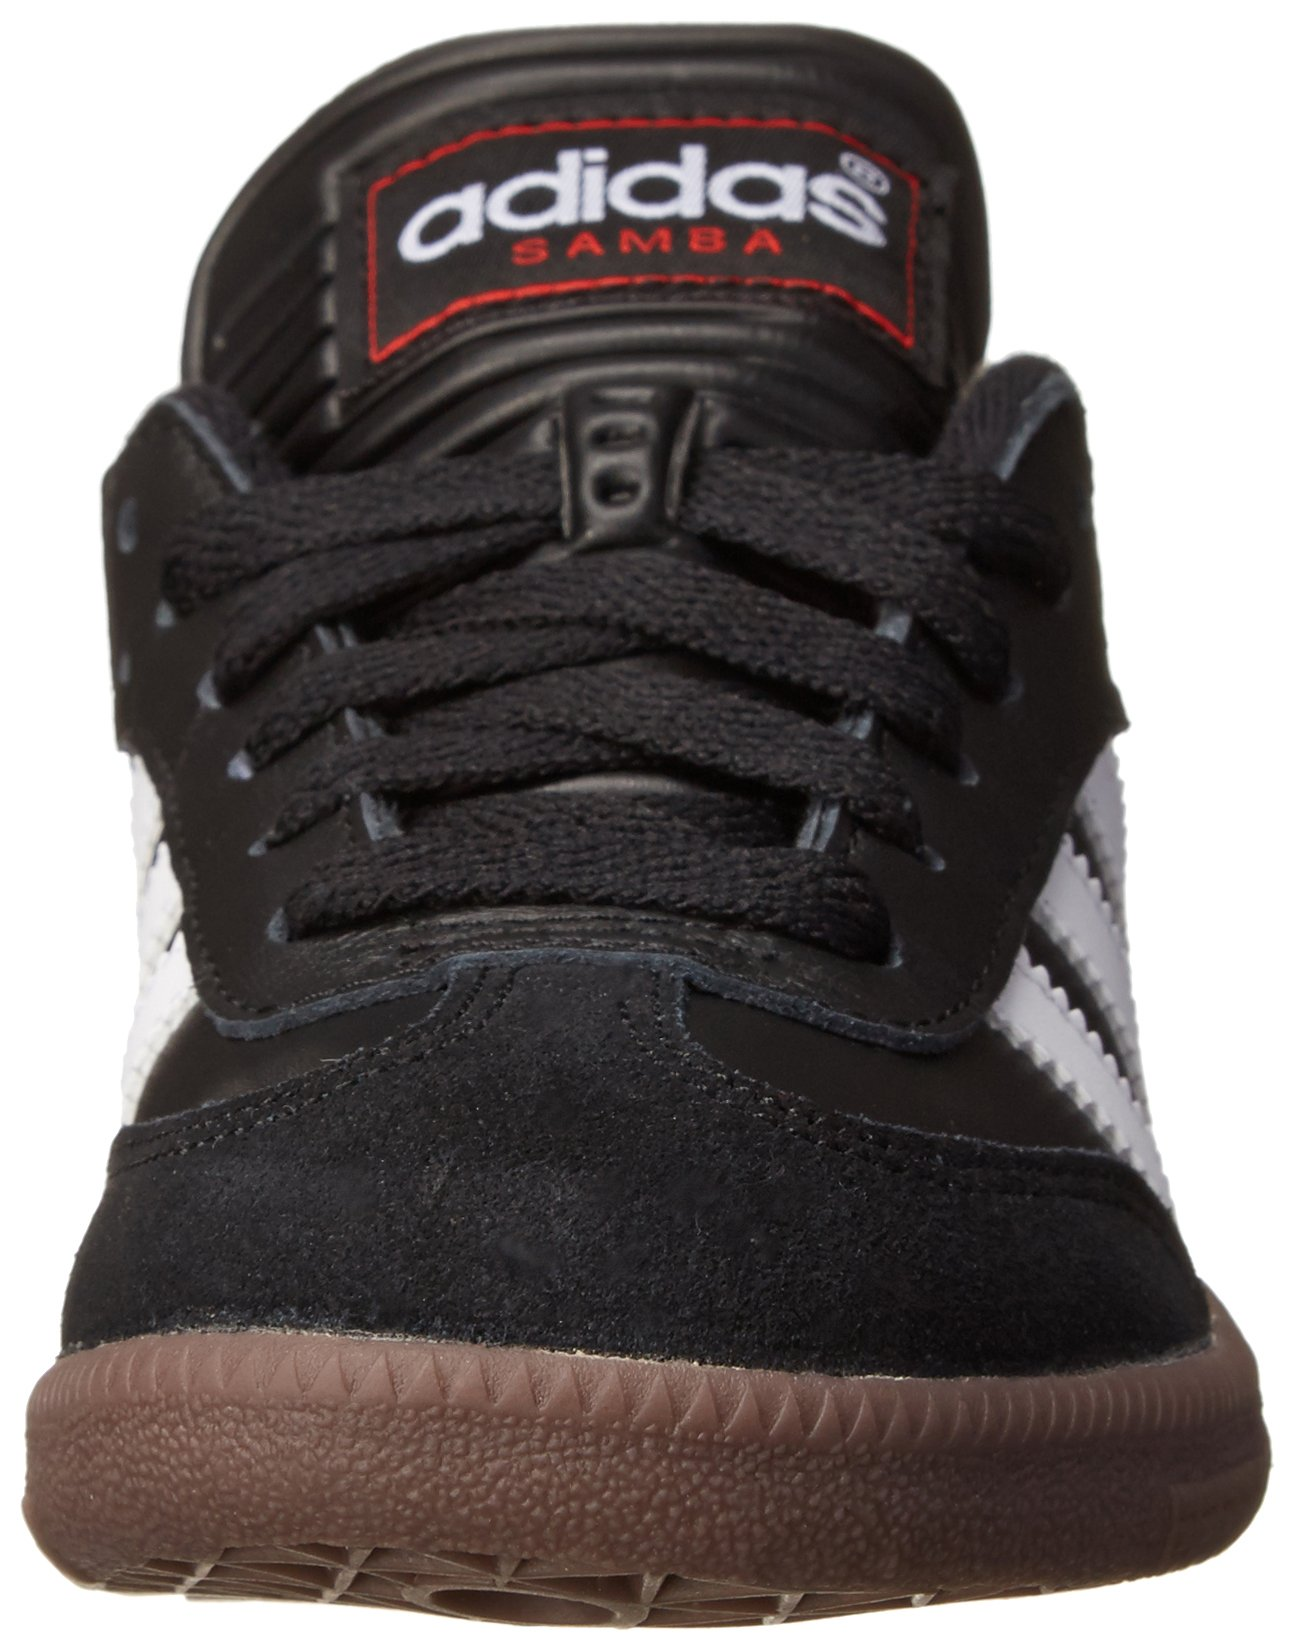 Galleon - Adidas Samba Classic Soccer Shoe, Black/White ...